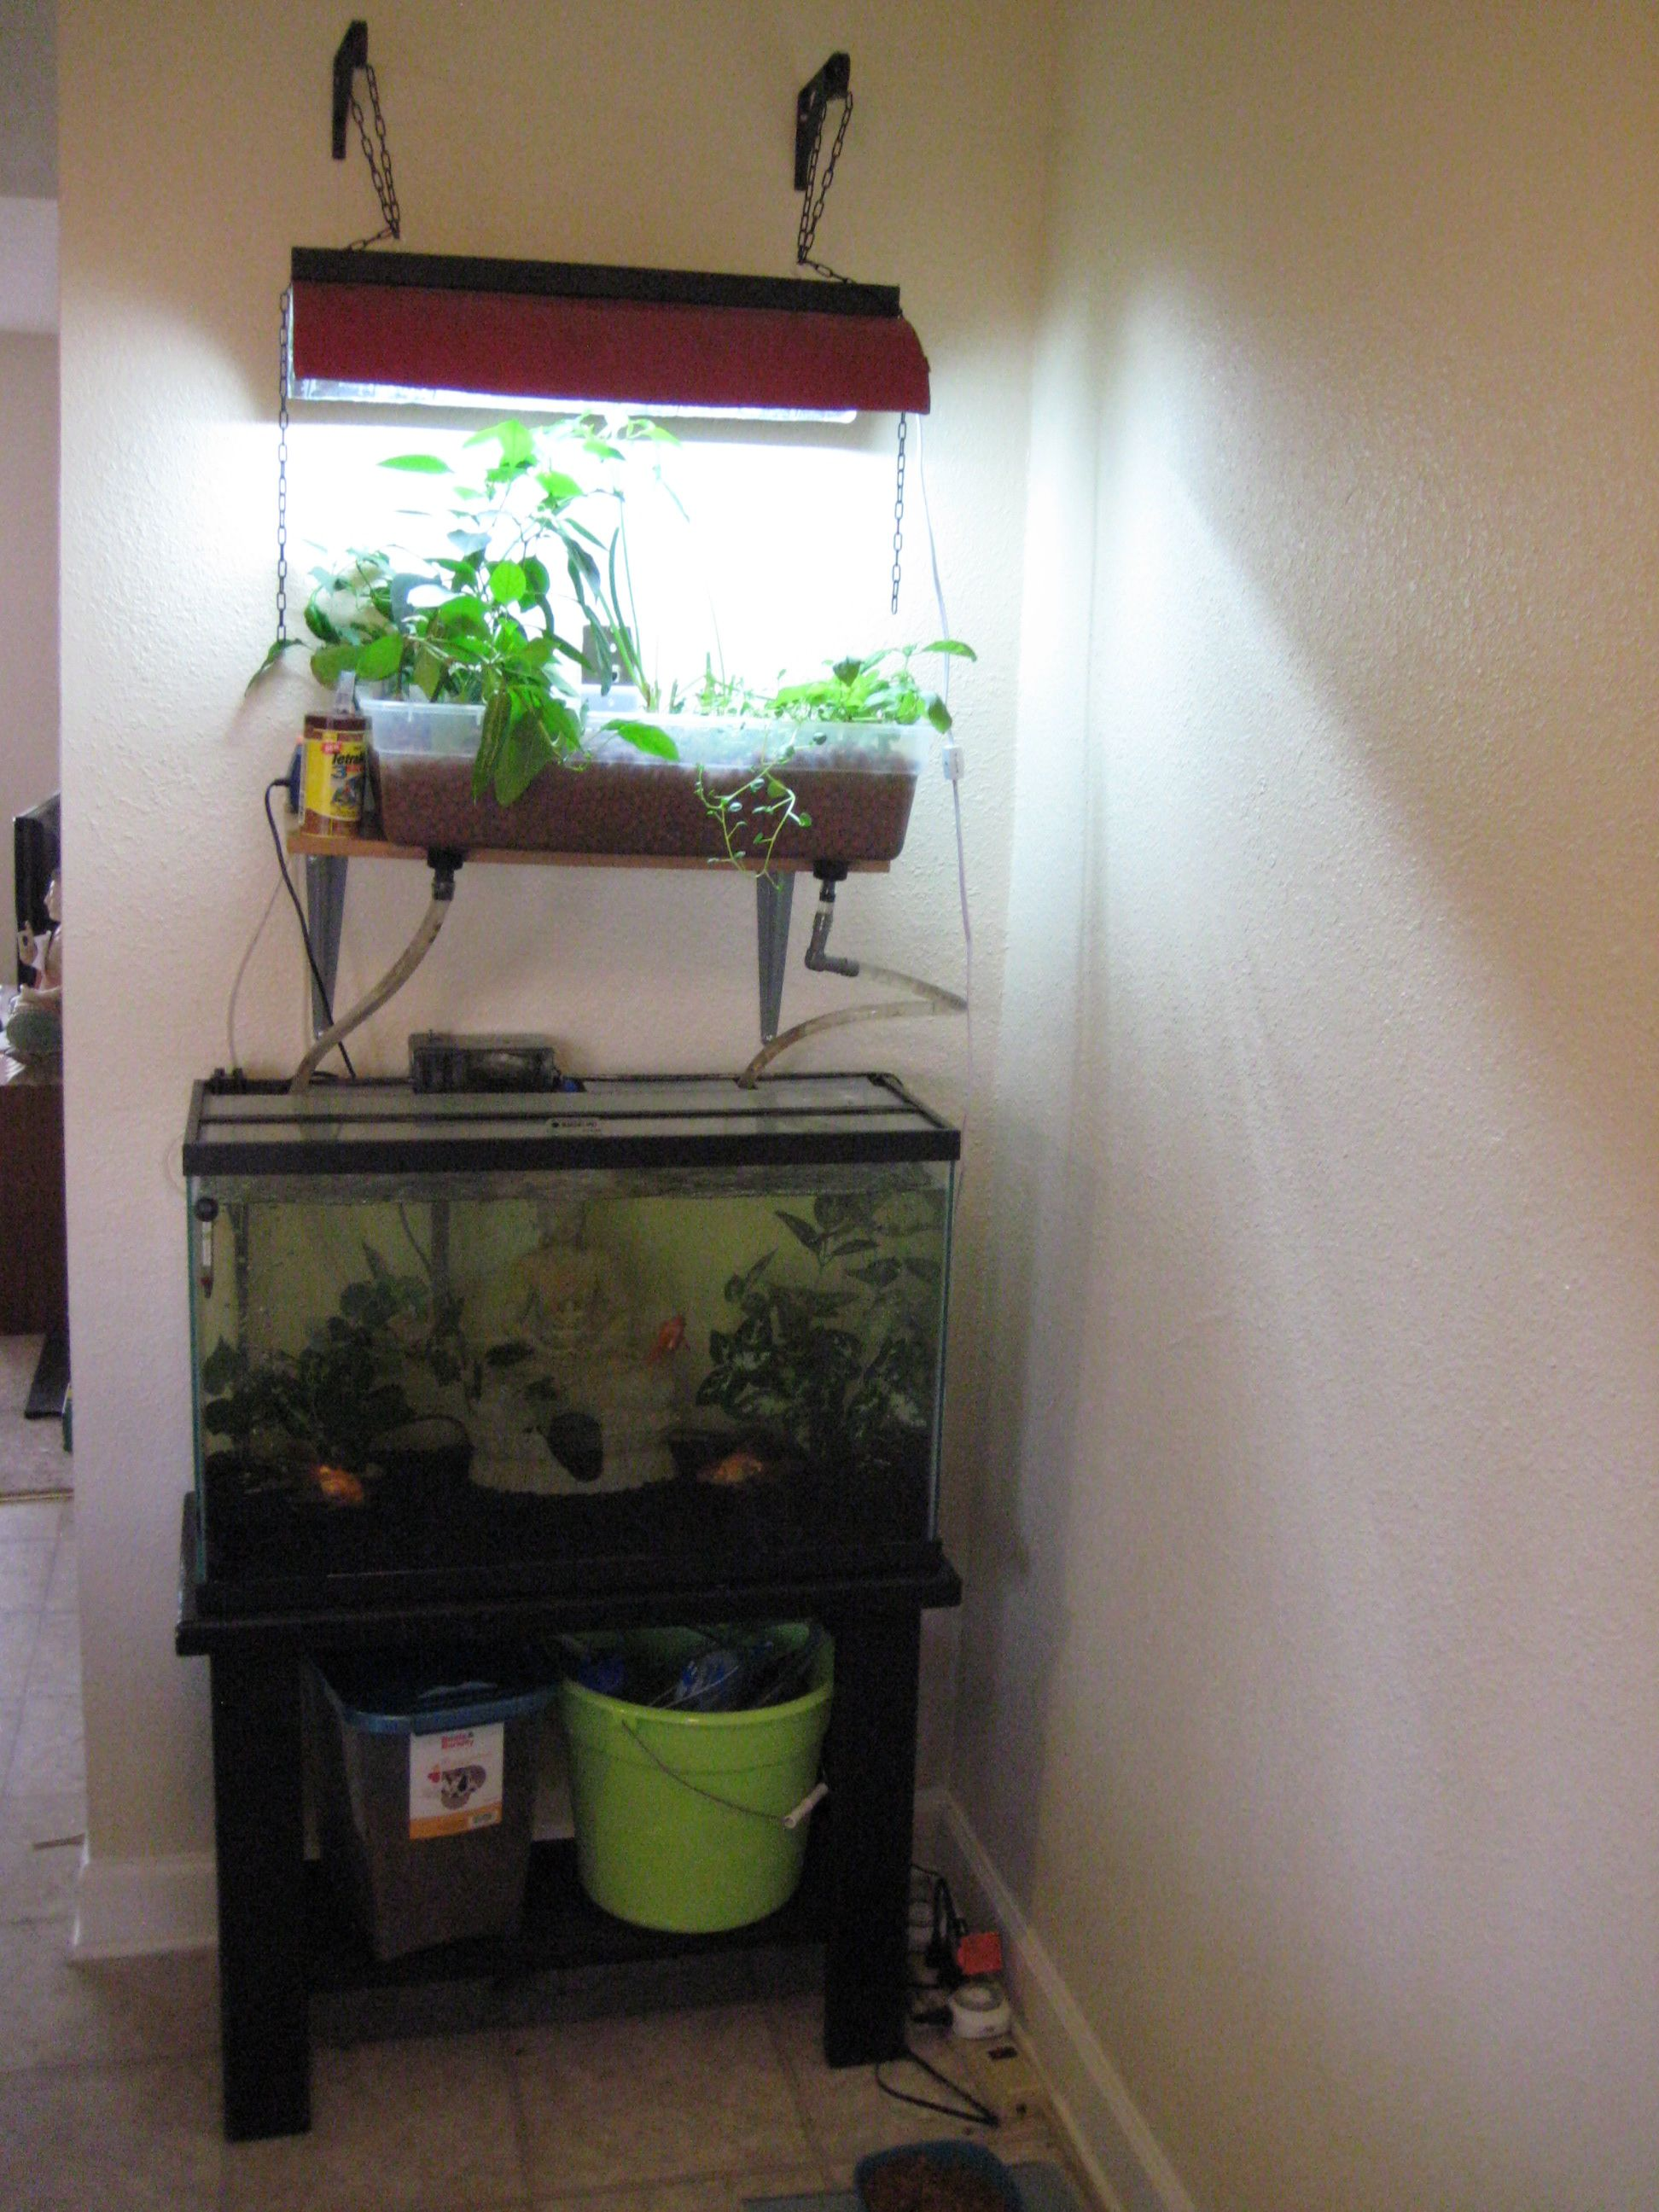 Diy aquaponics fish tank google search aquaponics for Fish tank hydroponic garden